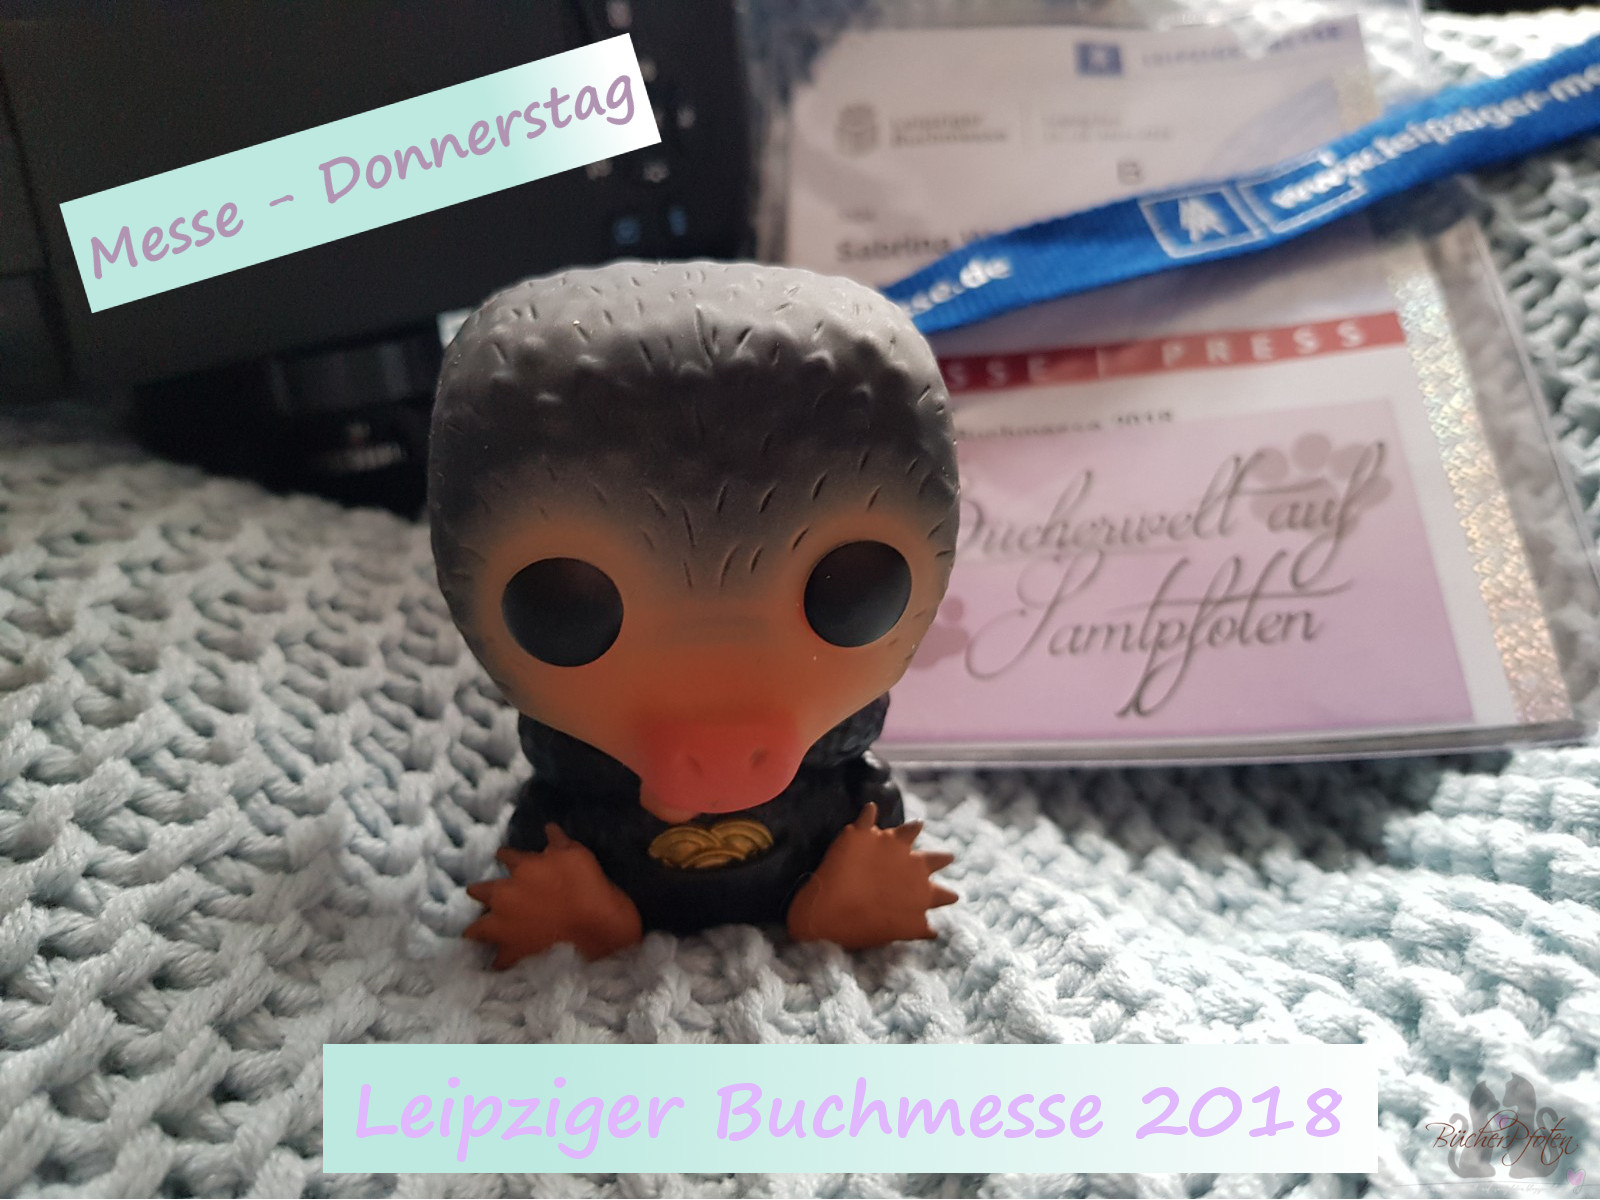 LBM Tag 1 Messe - Donnerstag